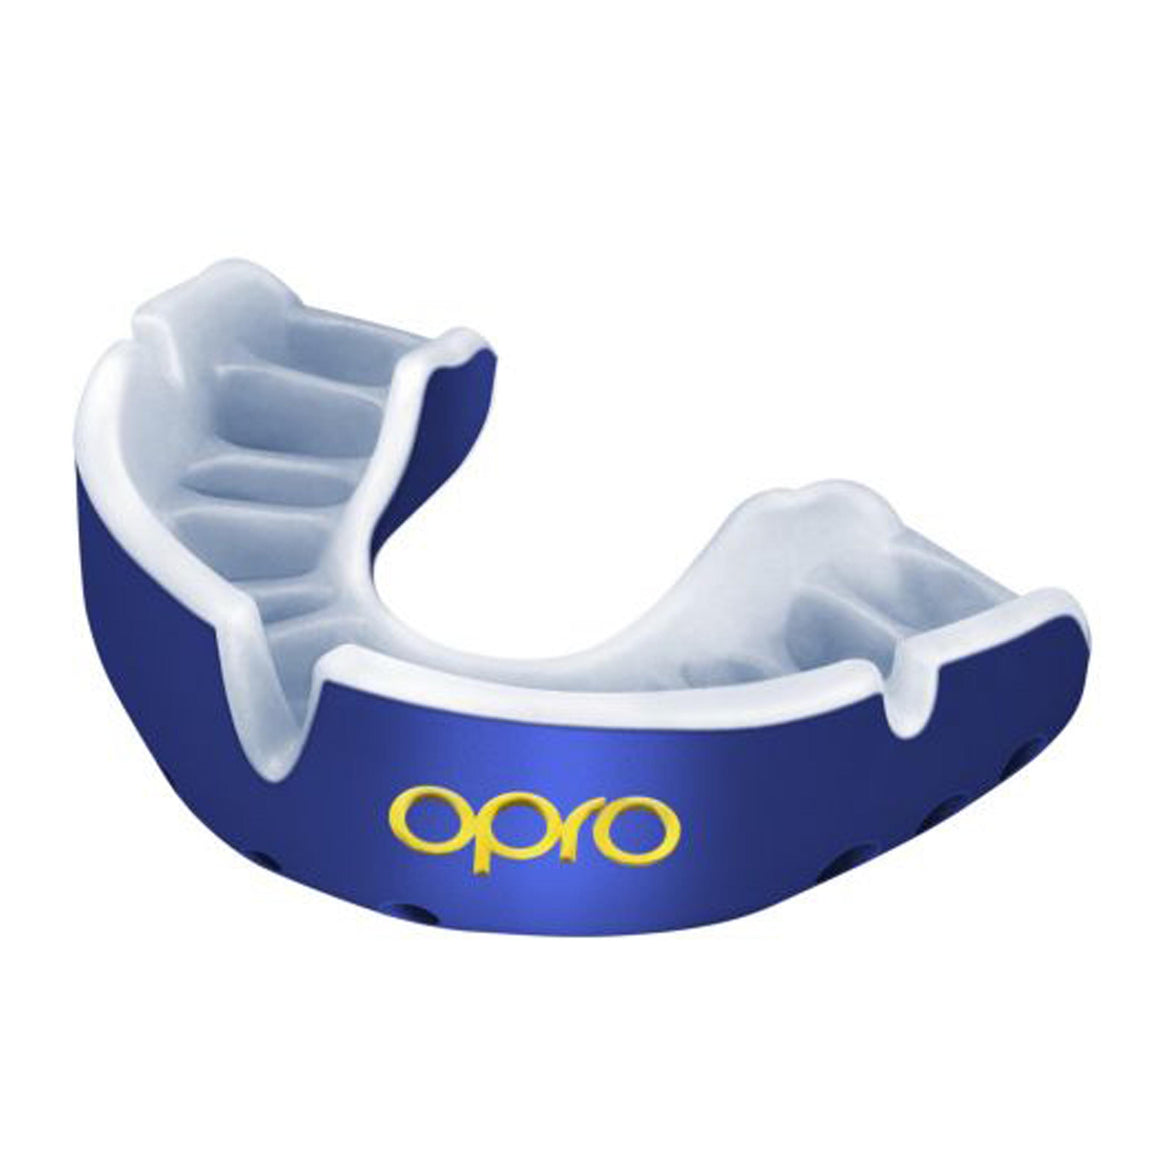 Ortho Gold Mouthguard in Blue & White